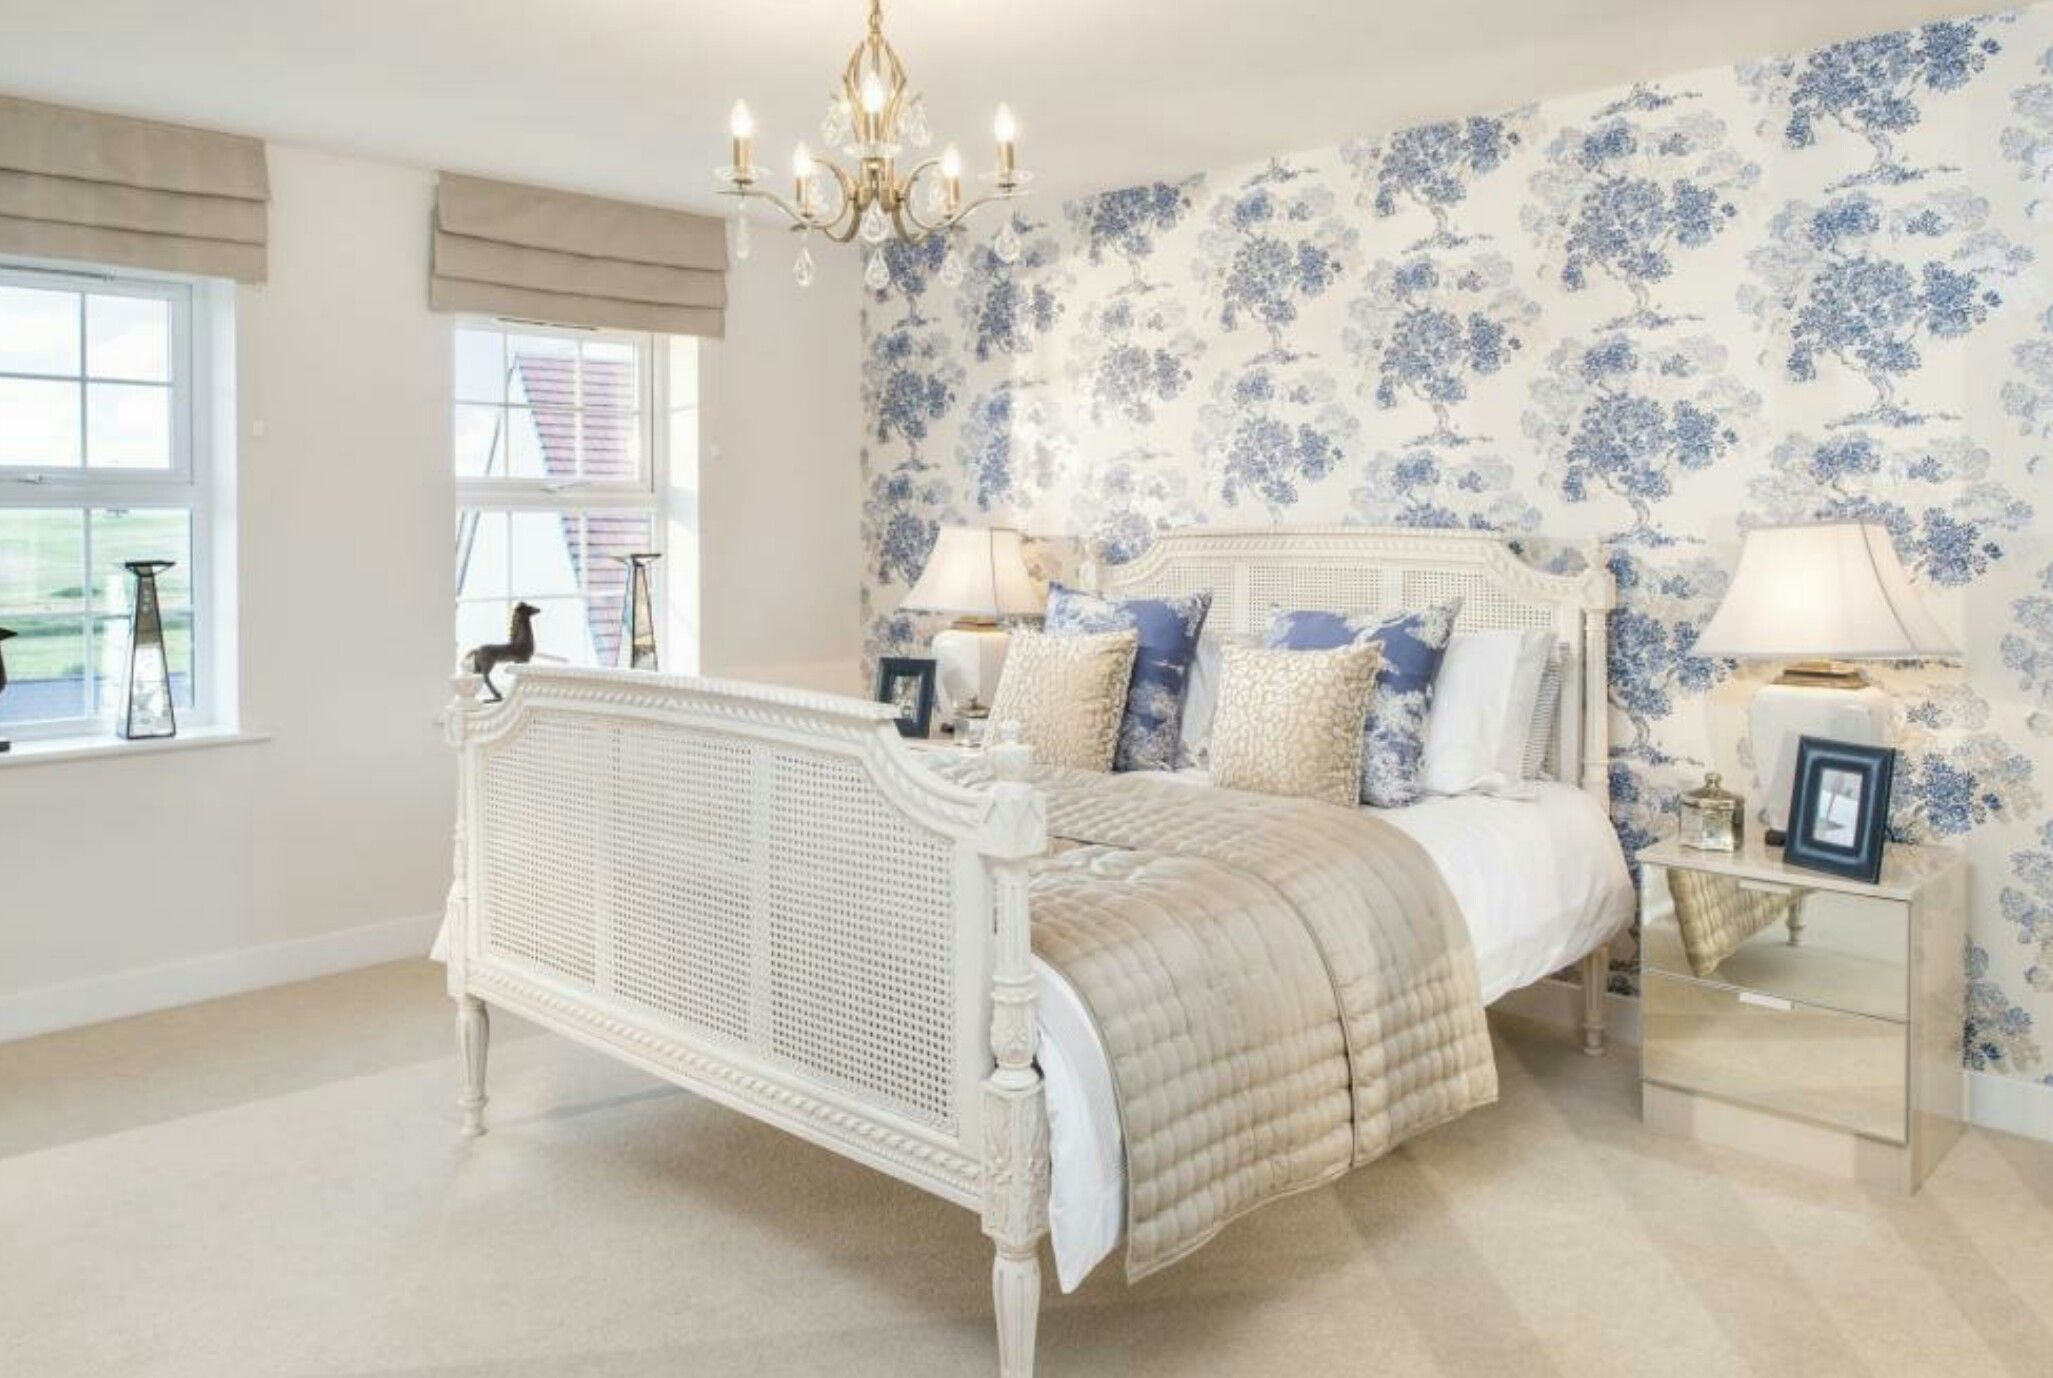 Interior Designed Guest Bedroom. French white painted cane